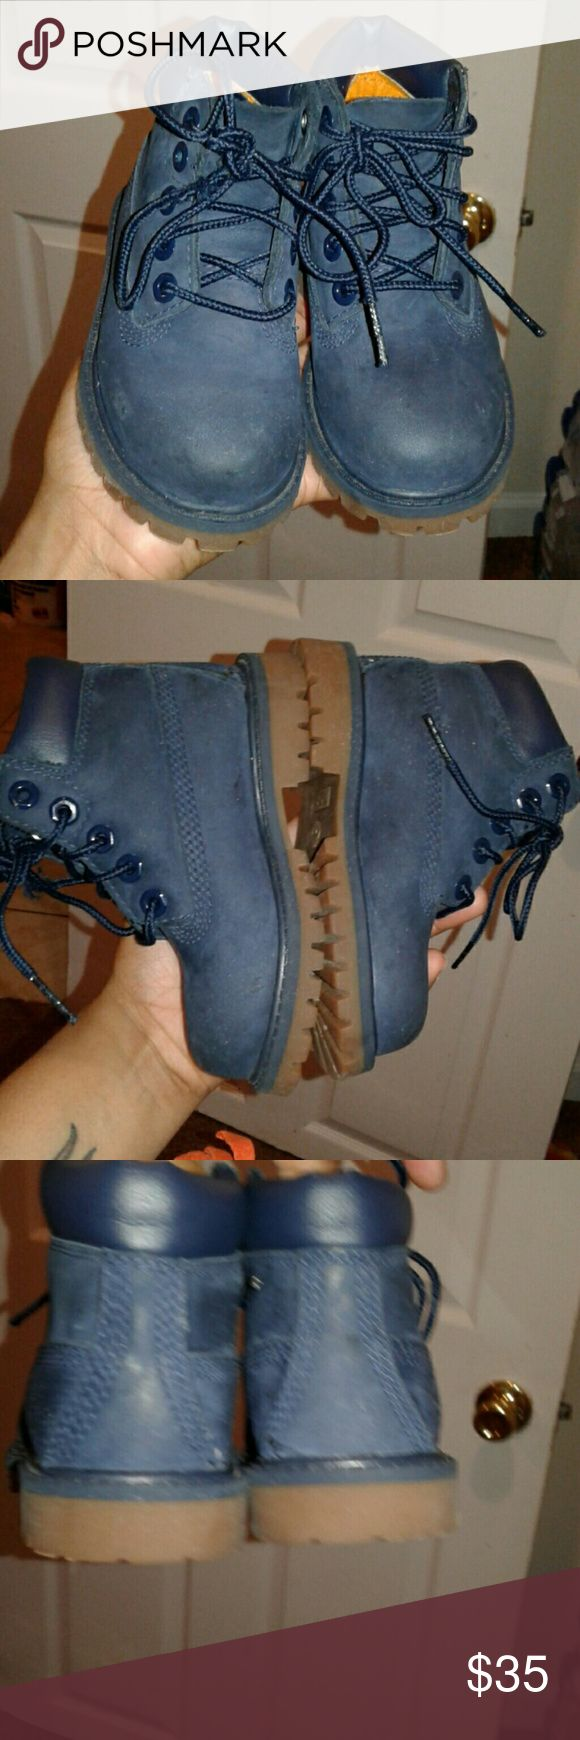 Timberland Boots Size 7c Navy Excellent Condition Size 7c Navy Blue Timberland Boots for Boy/Girl Timberland Shoes Boots